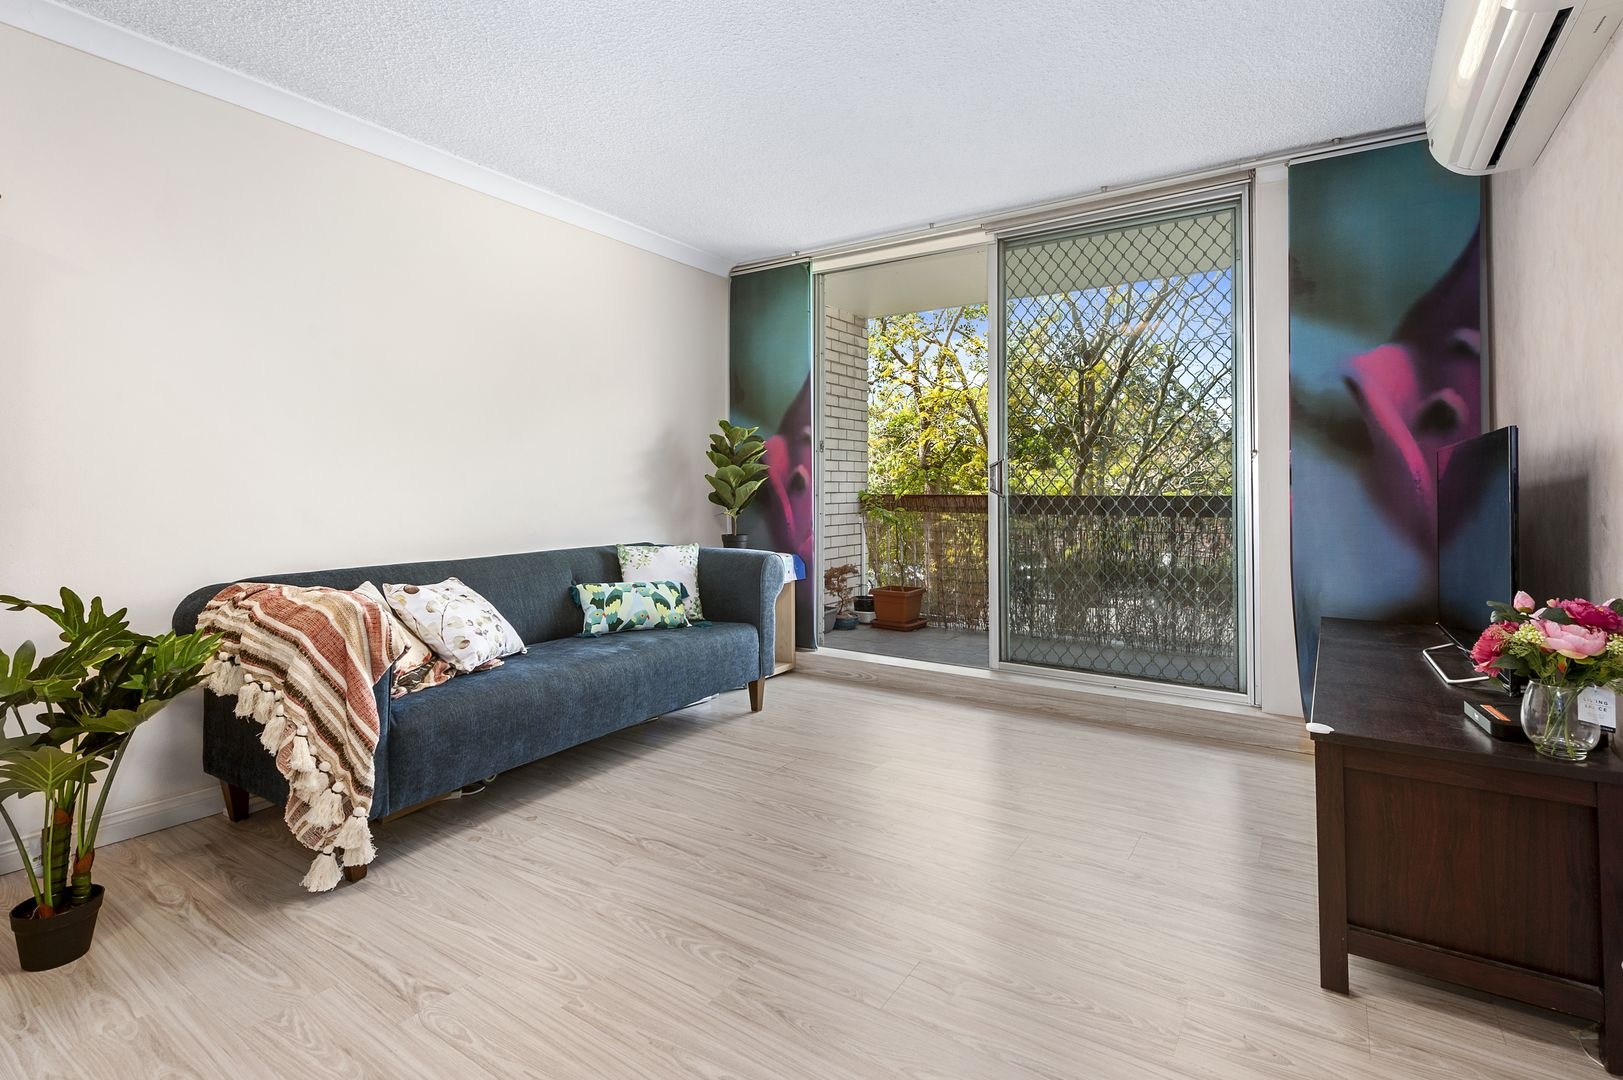 20/81-83 Florence Street, Hornsby NSW 2077, Image 2